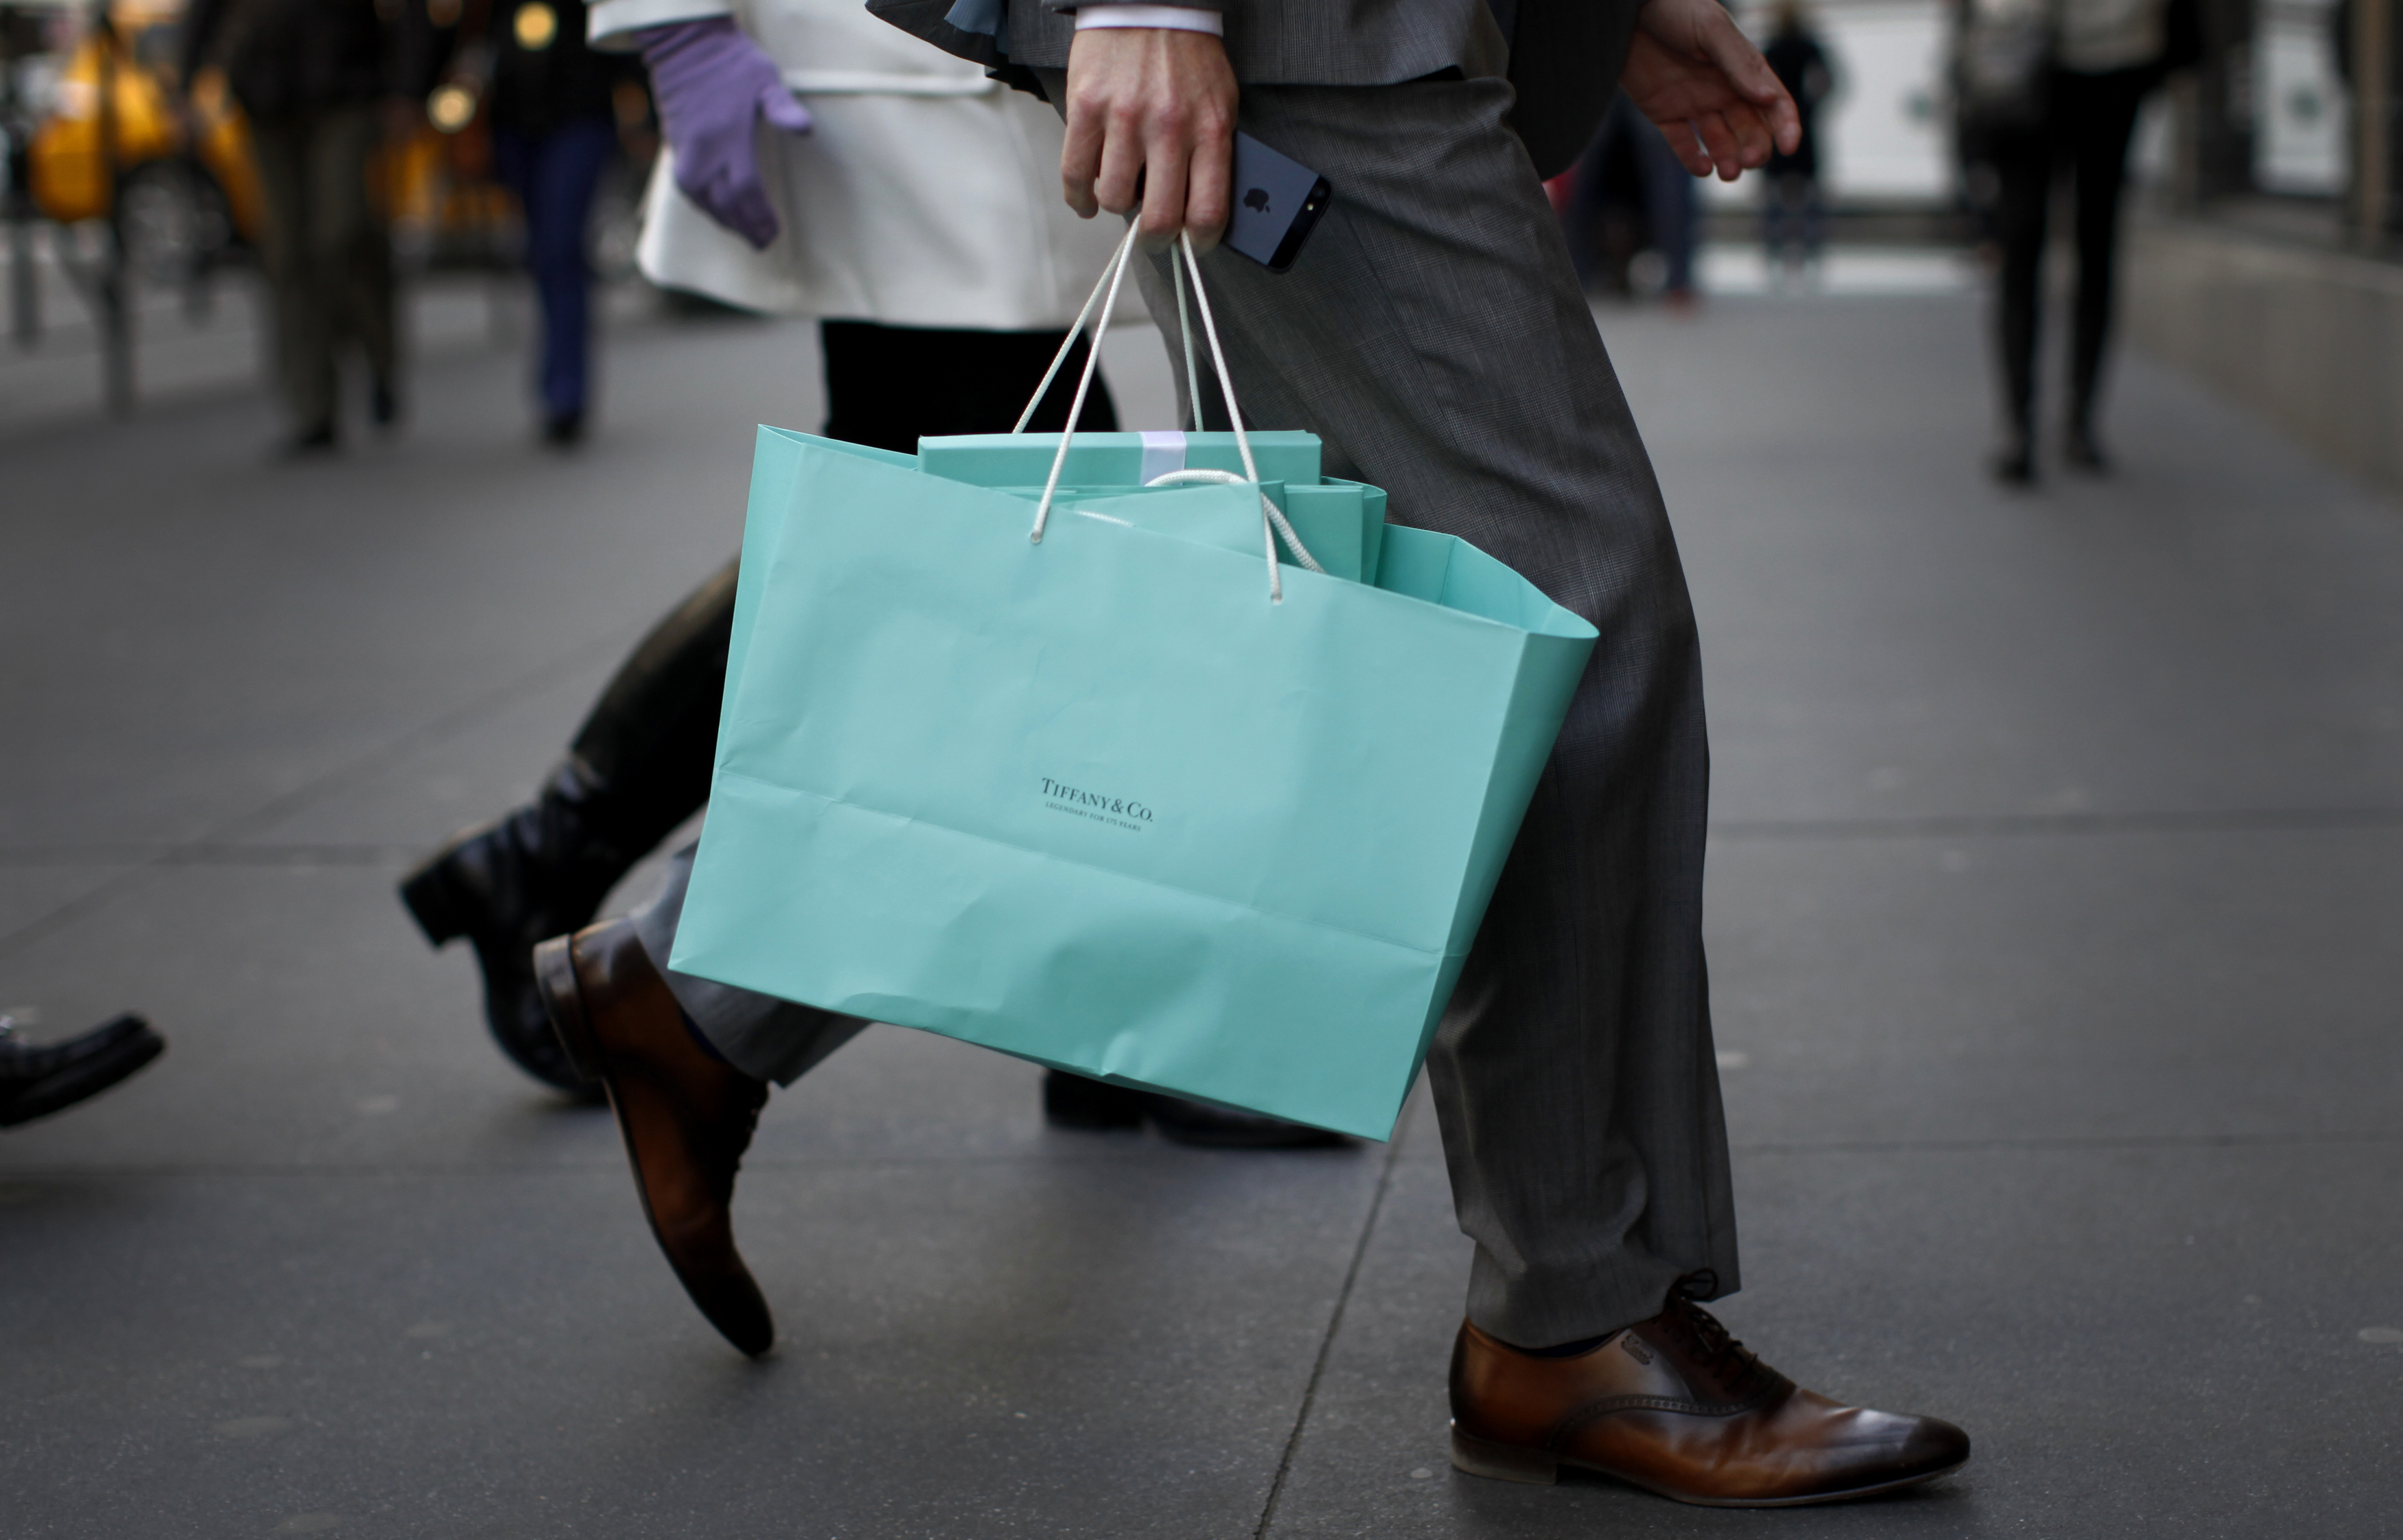 A shopper carries bags from Tiffany & Co. jewelers along 5th Avenue in New York City